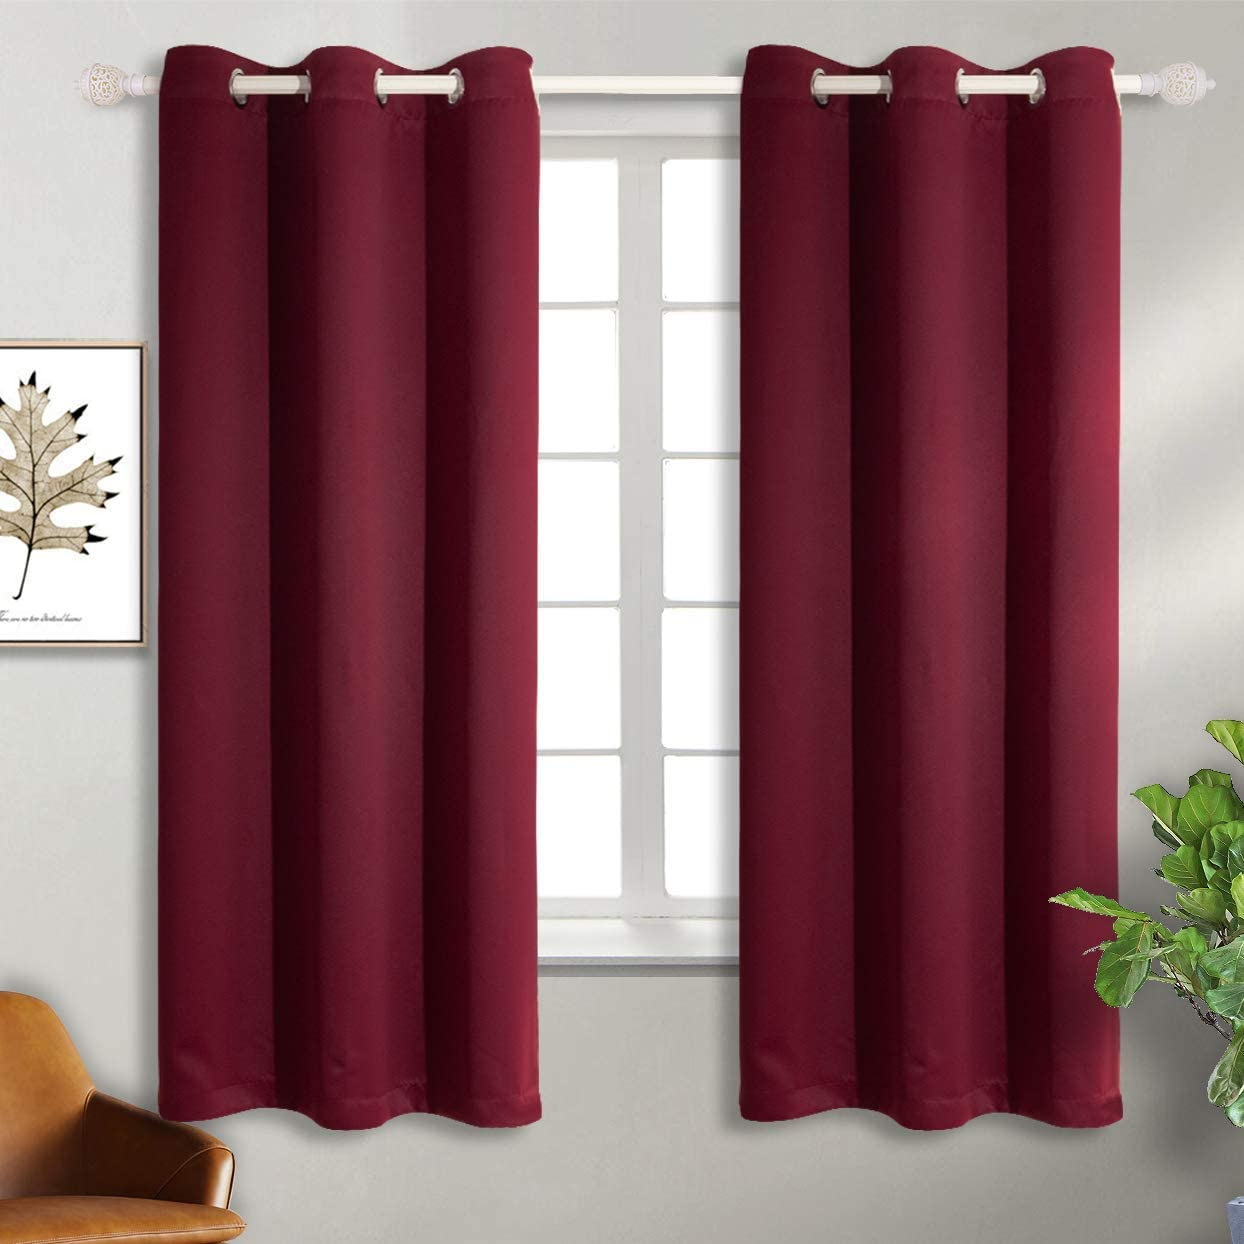 BGment Burgundy Blackout Curtains for Bedroom - Grommet Thermal Insulated Room Darkening Curtains for Living Room, Set of 2 Panels (42 x 63 Inch, Dark Red)